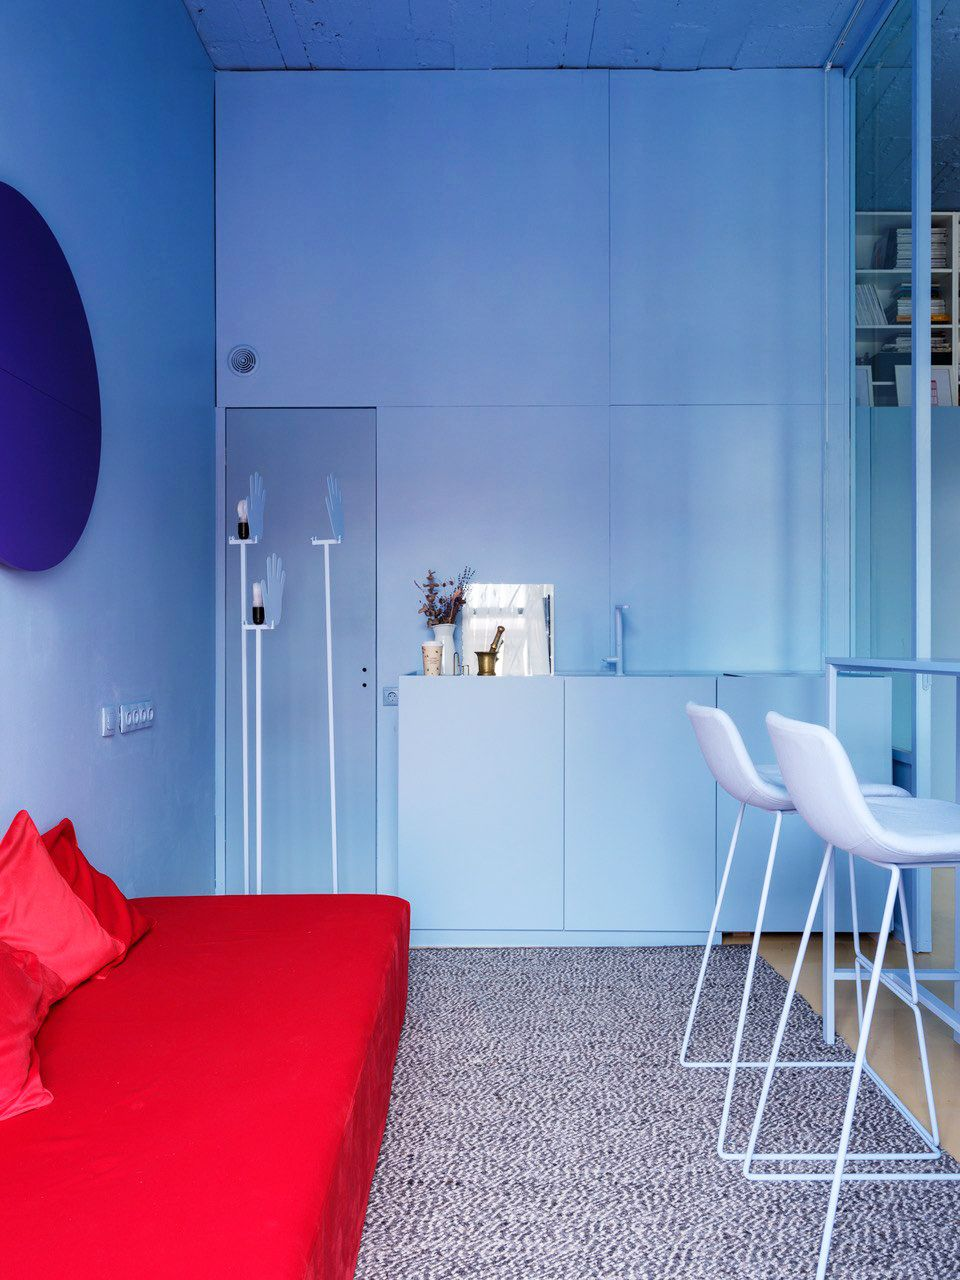 19 Rooms That Make a Strong Case for Monochromatic Color Schemes